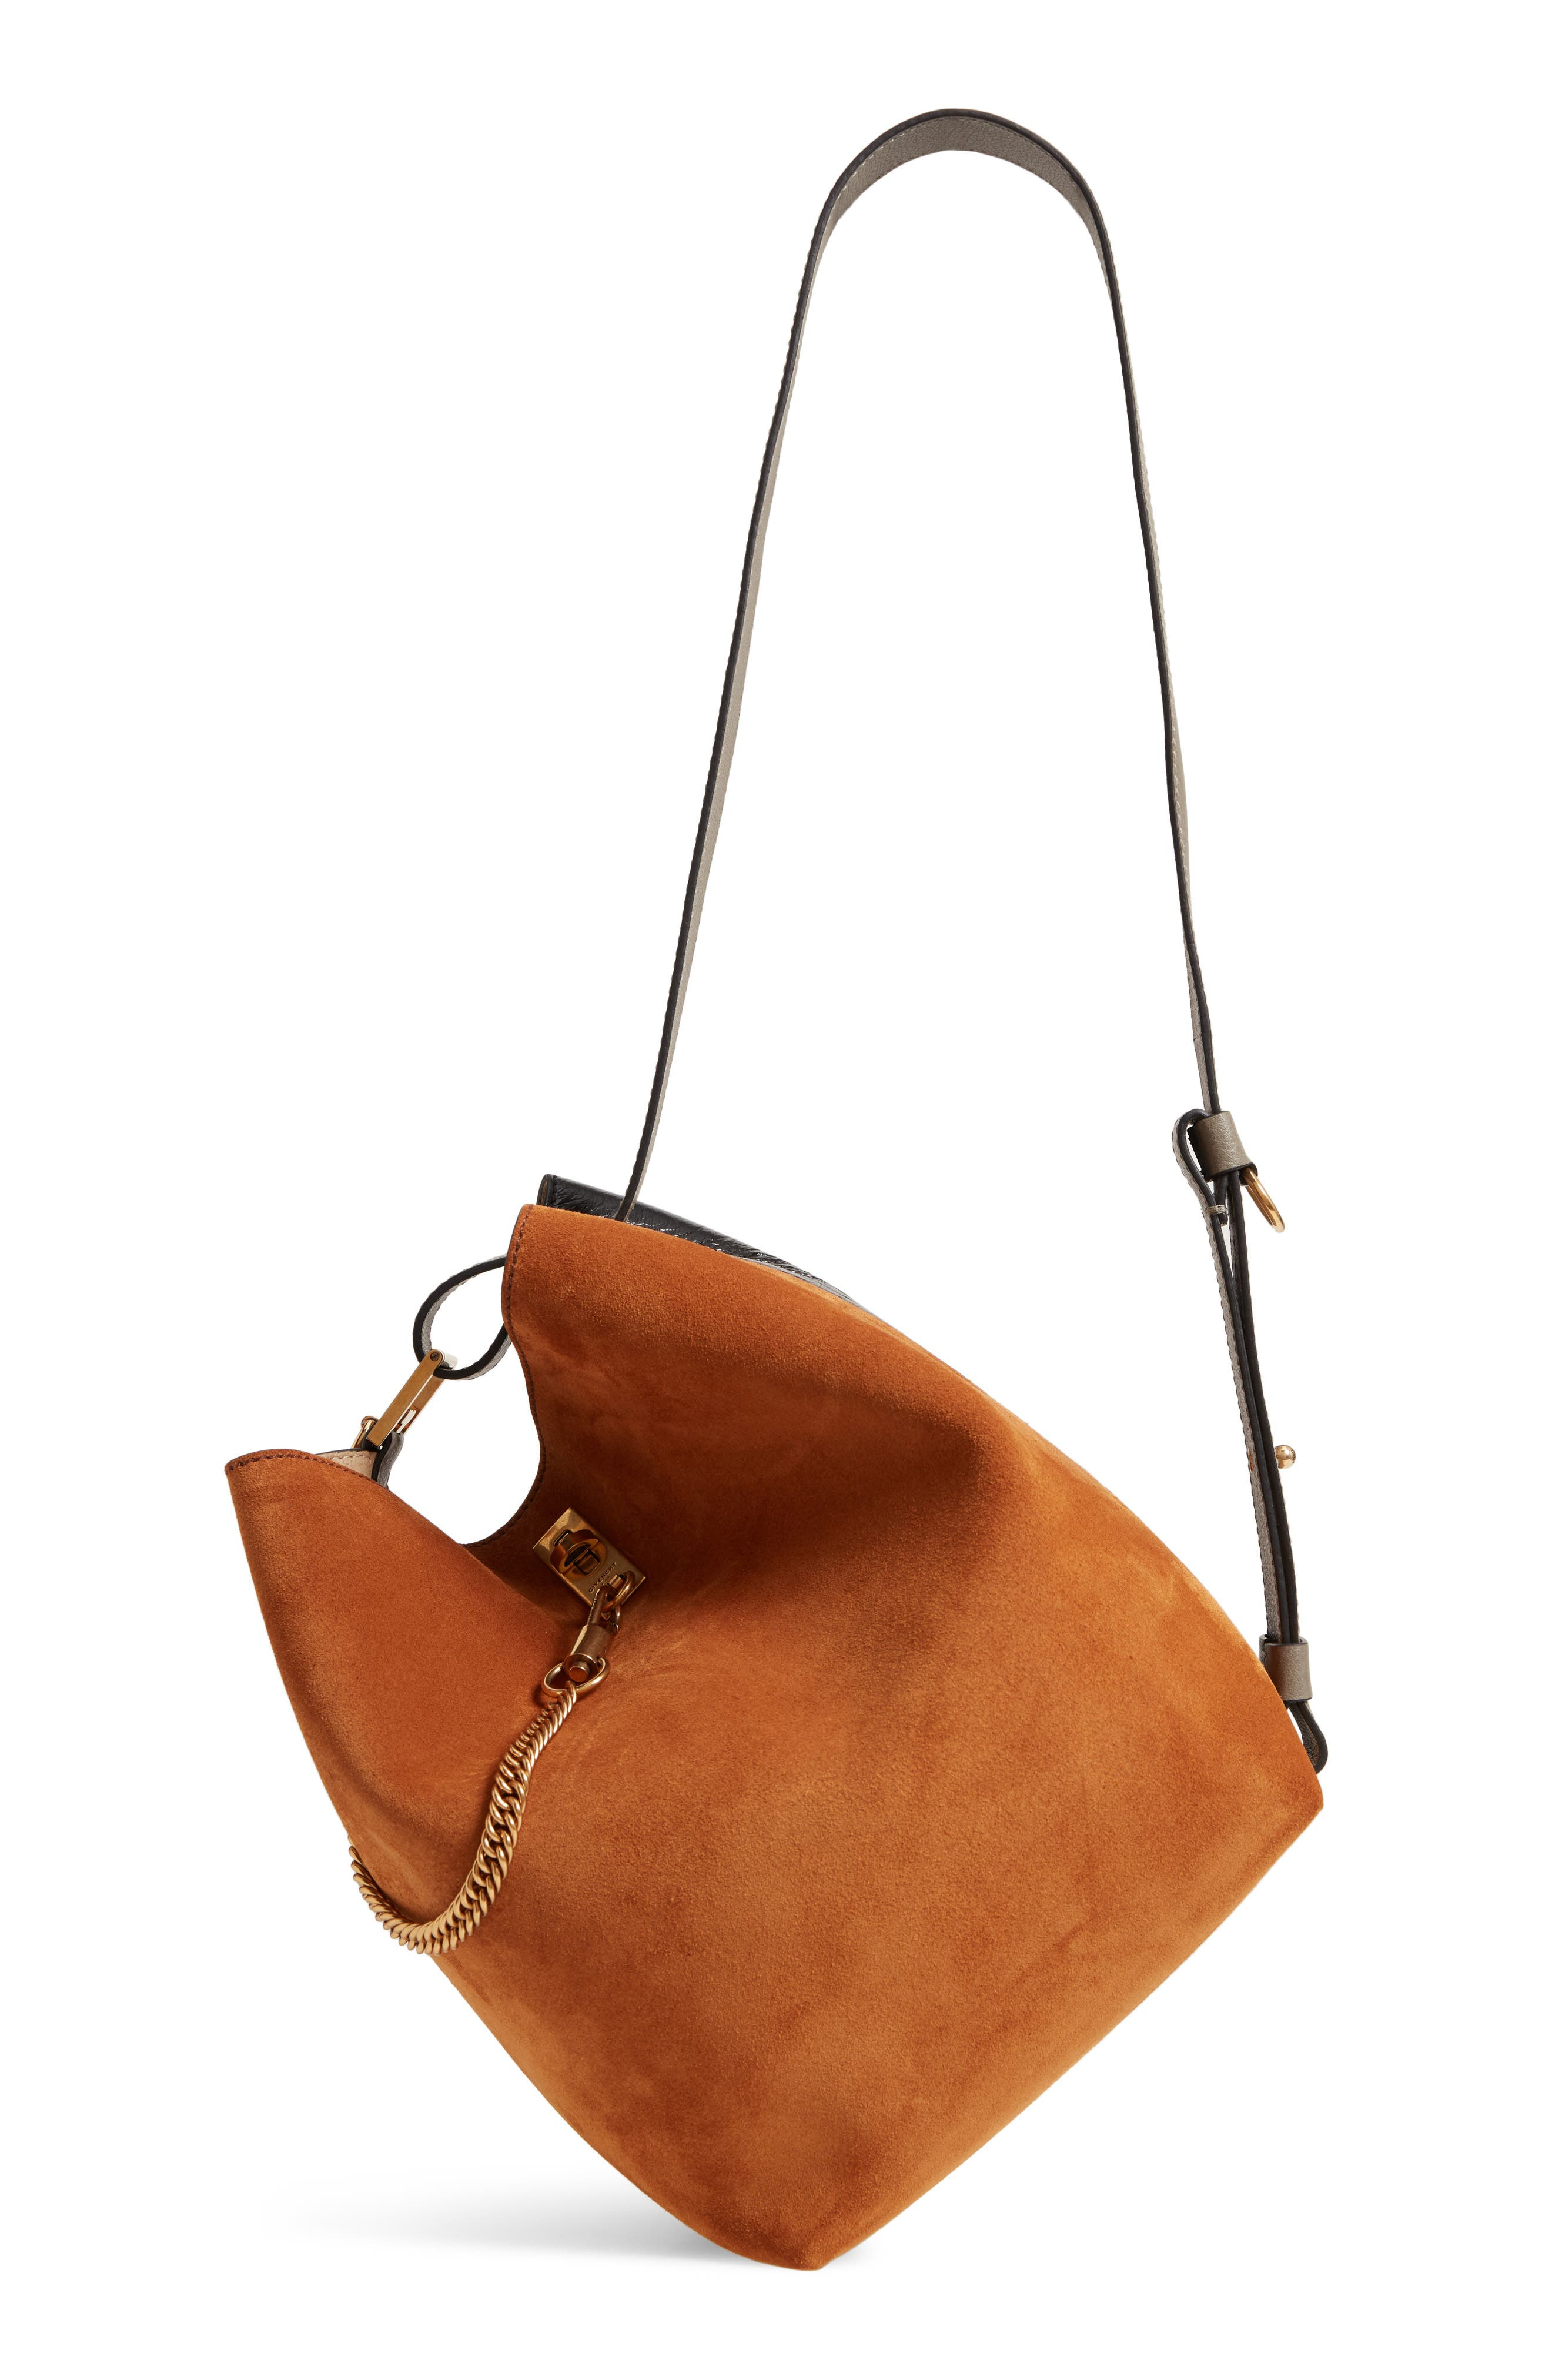 Medium GV Lambskin Bucket Bag,                             Alternate thumbnail 3, color,                             BLACK/ CHESTNUT